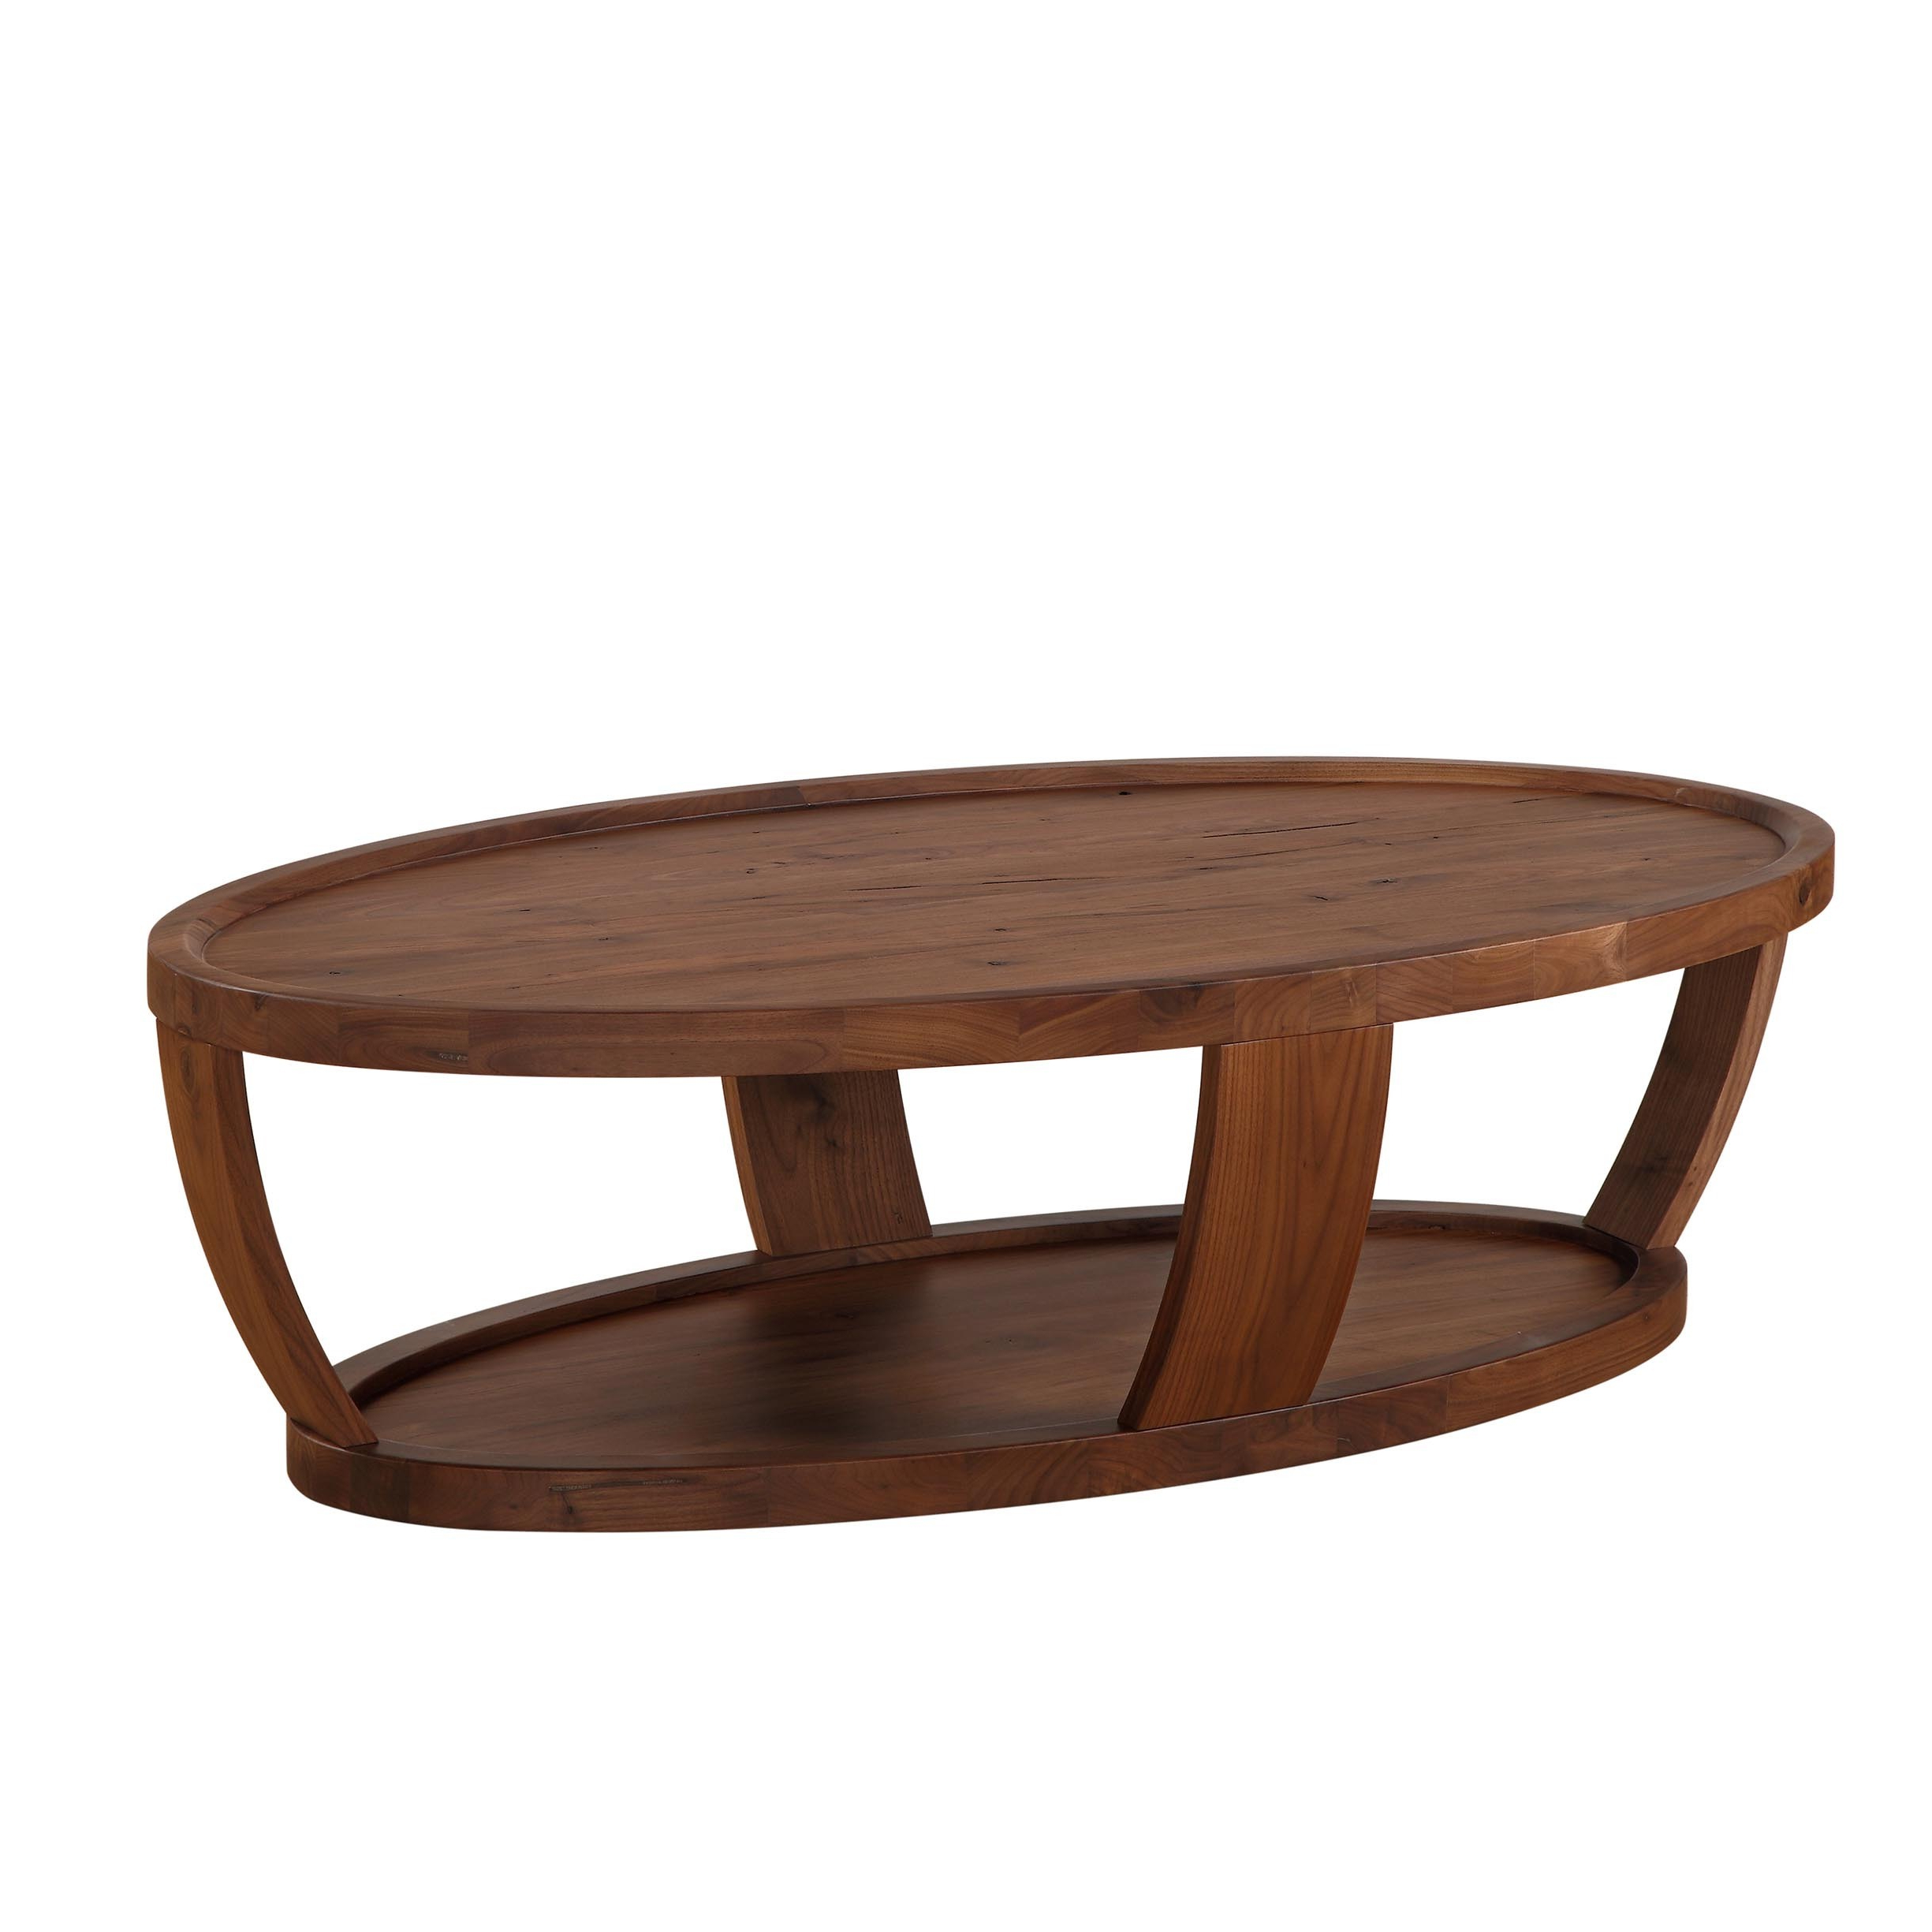 Craftsman Cocktail Tables Inside Latest Shop Aurelle Home American Walnut Craftsman Coffee Table – On Sale (View 2 of 20)